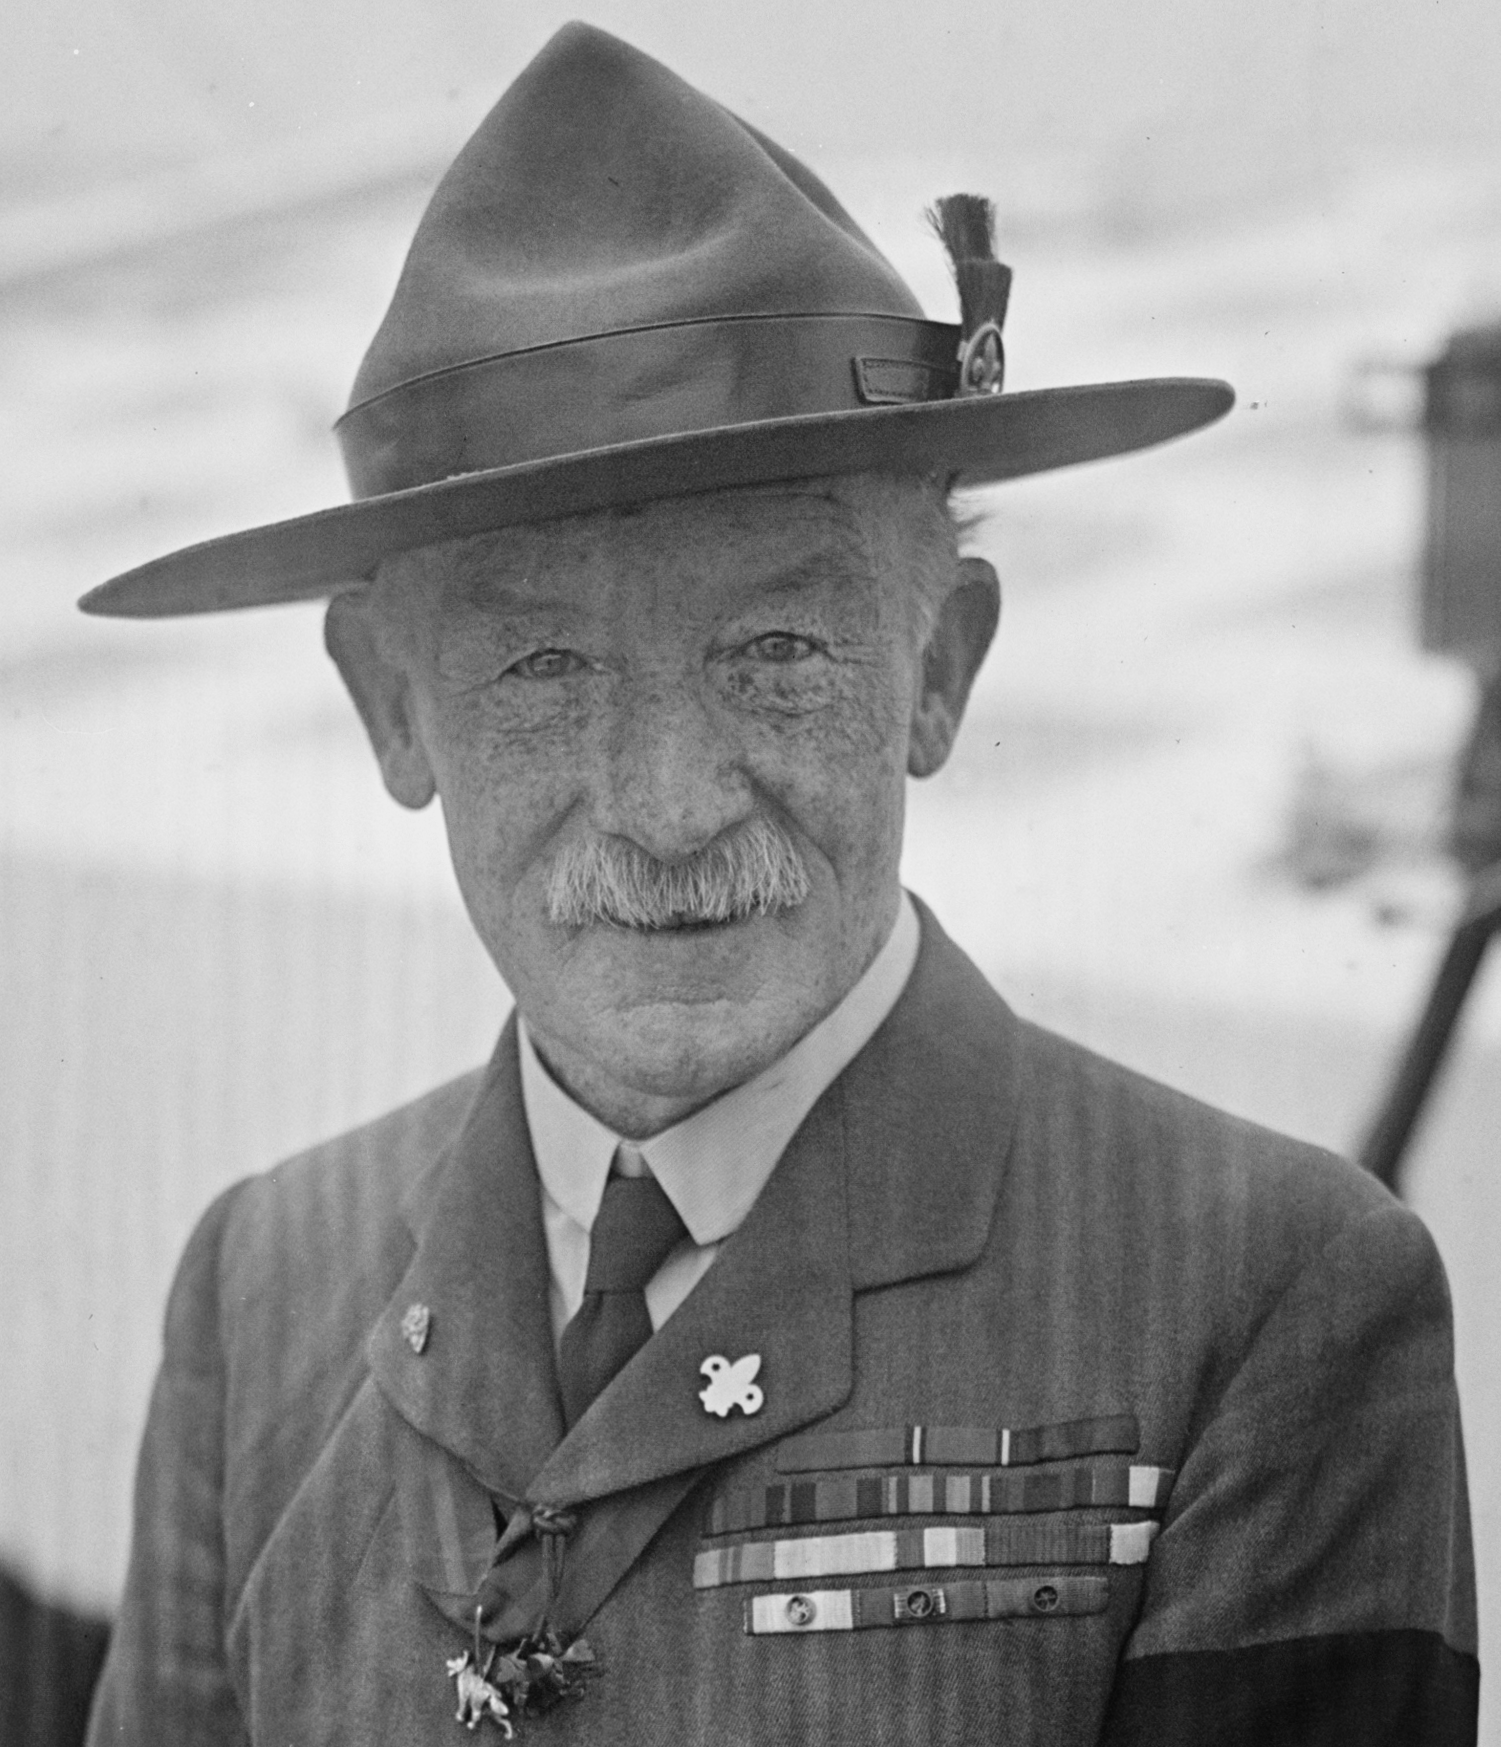 https://upload.wikimedia.org/wikipedia/commons/7/72/Baden-Powell_ggbain-39190_%28cropped%29.png